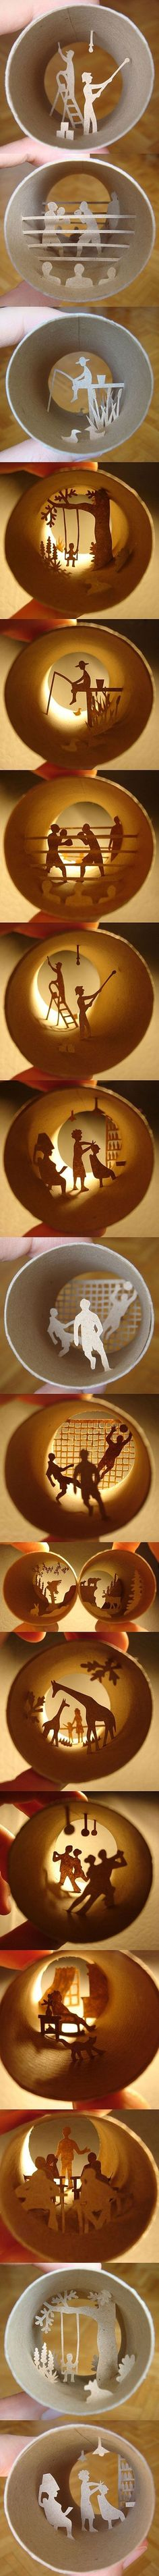 toilet paper roll art.....  why do i think this is so cool?